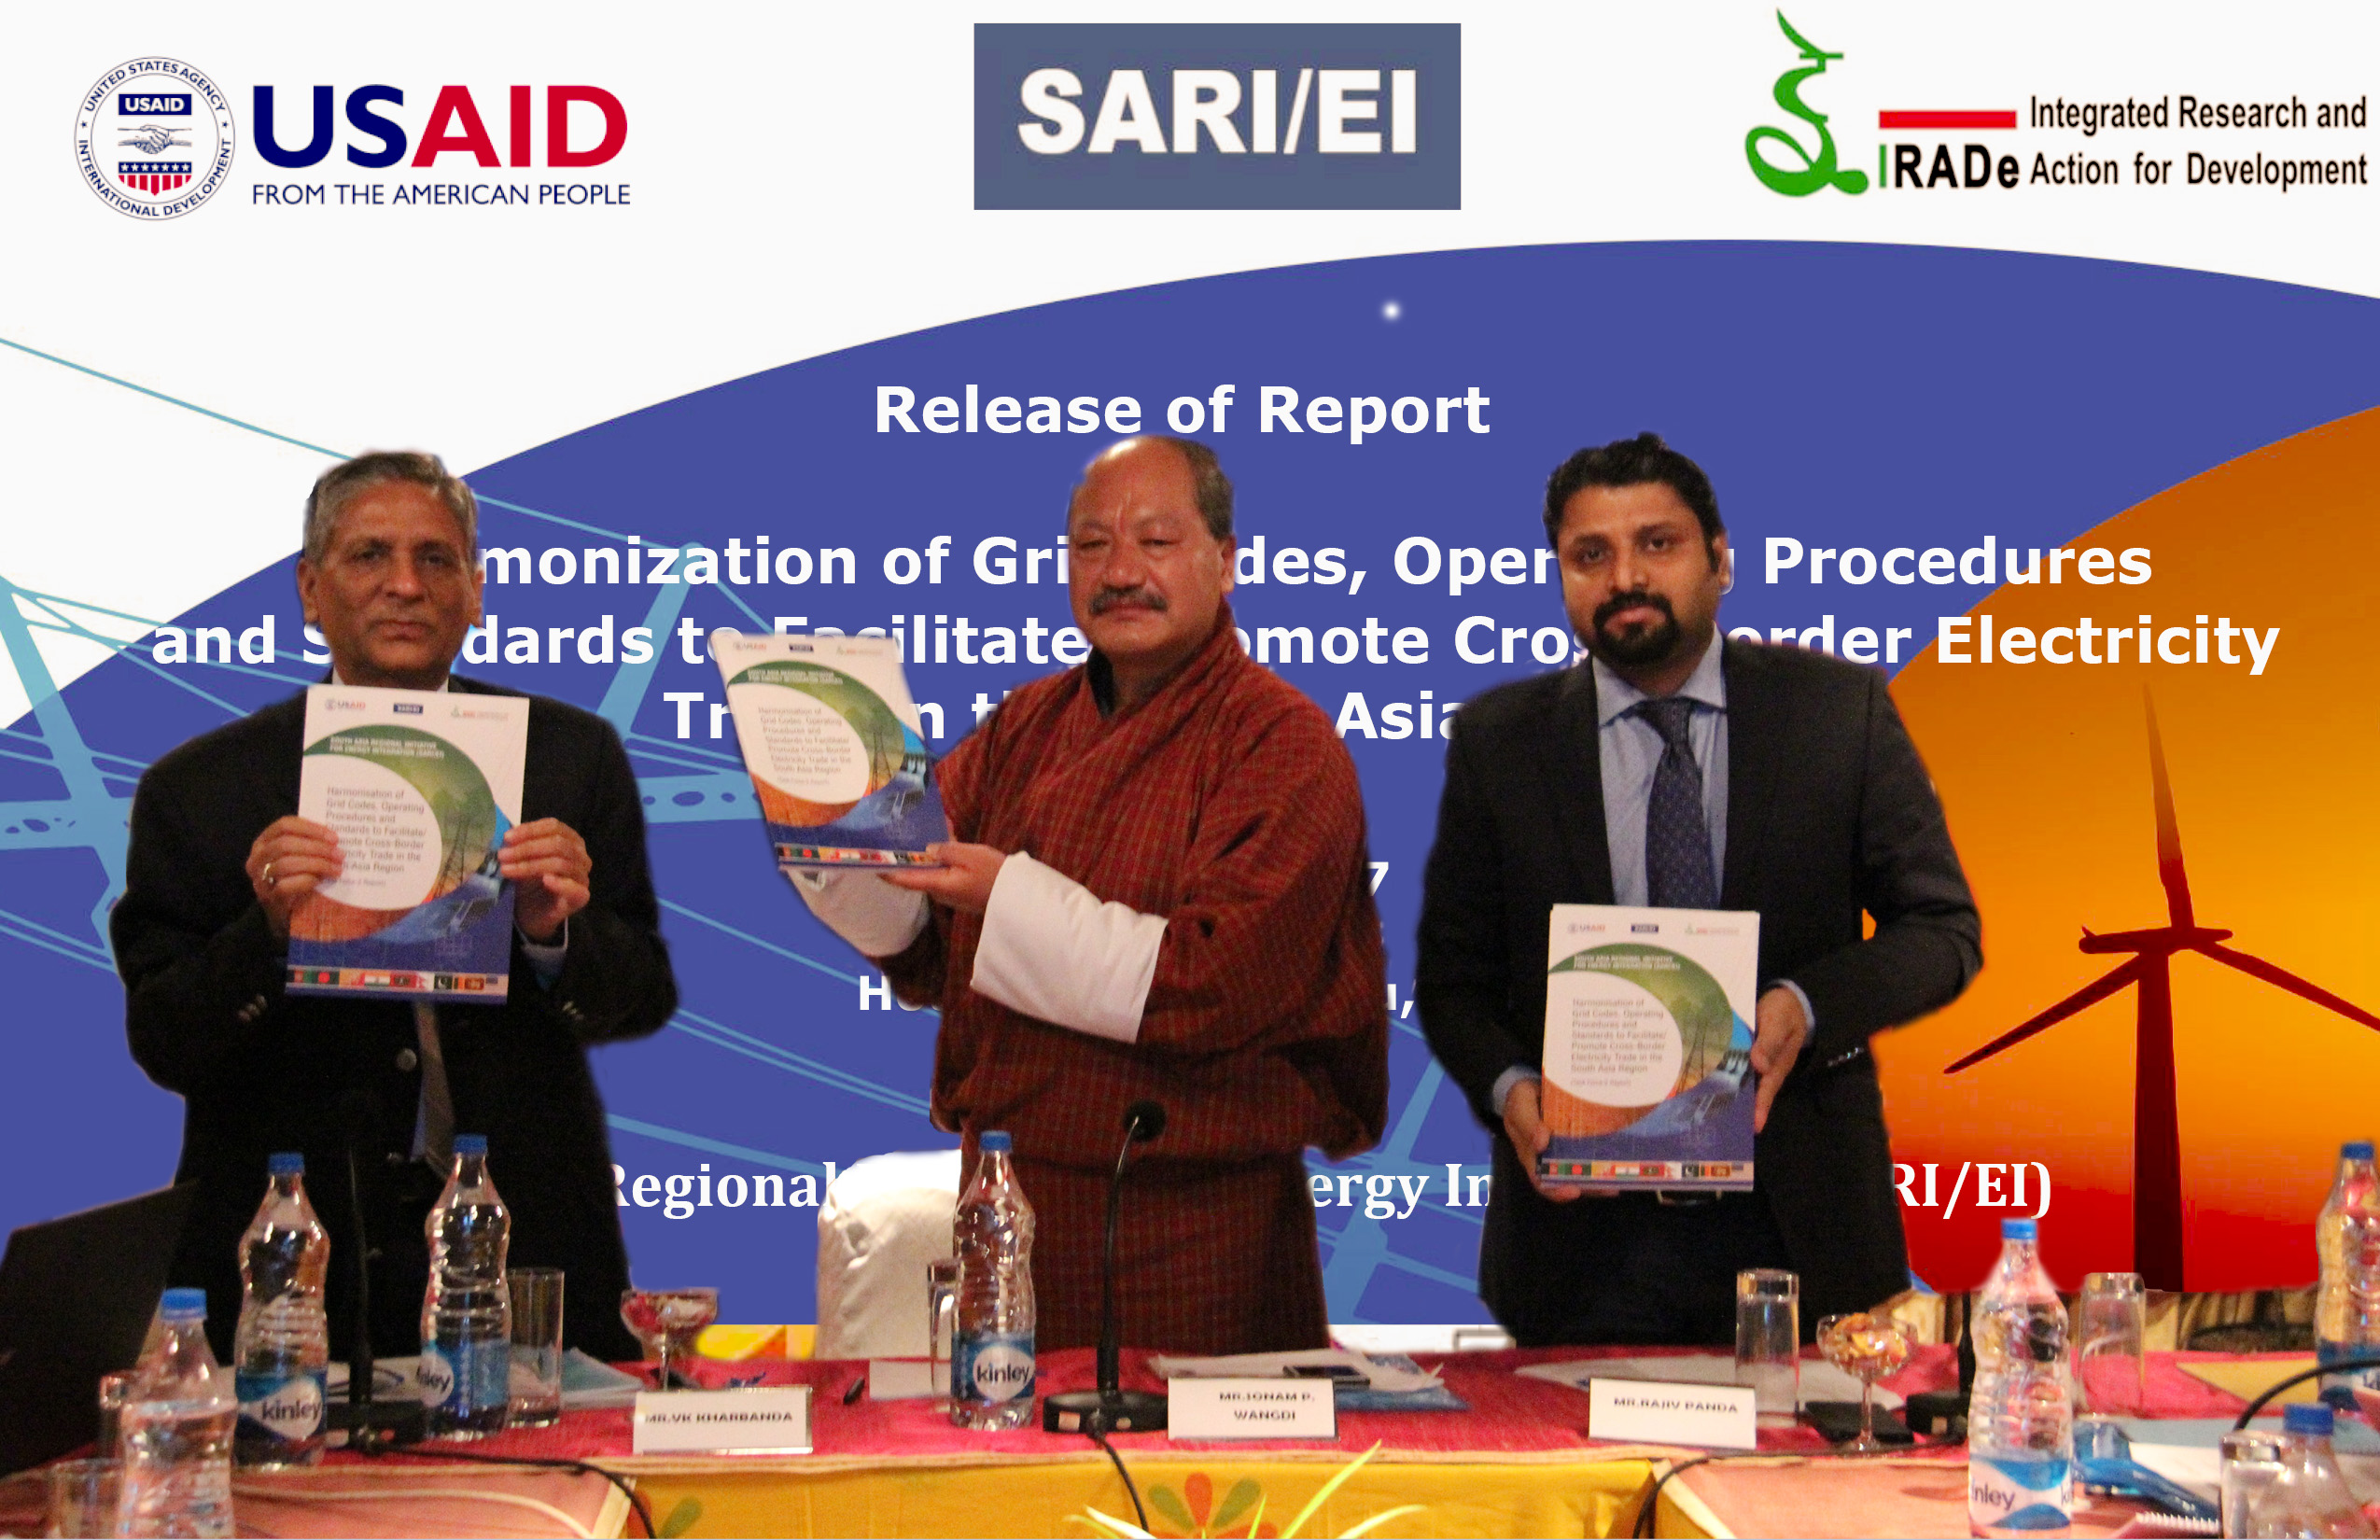 """Release of Report On """"Harmonization of Grid Codes, Operating Procedures and Standards to facilitate/promote Cross-Border Electricity Trade in the SA Region"""" 4th October, 2017 ,Hotel Druk, Thimphu, Bhutan"""